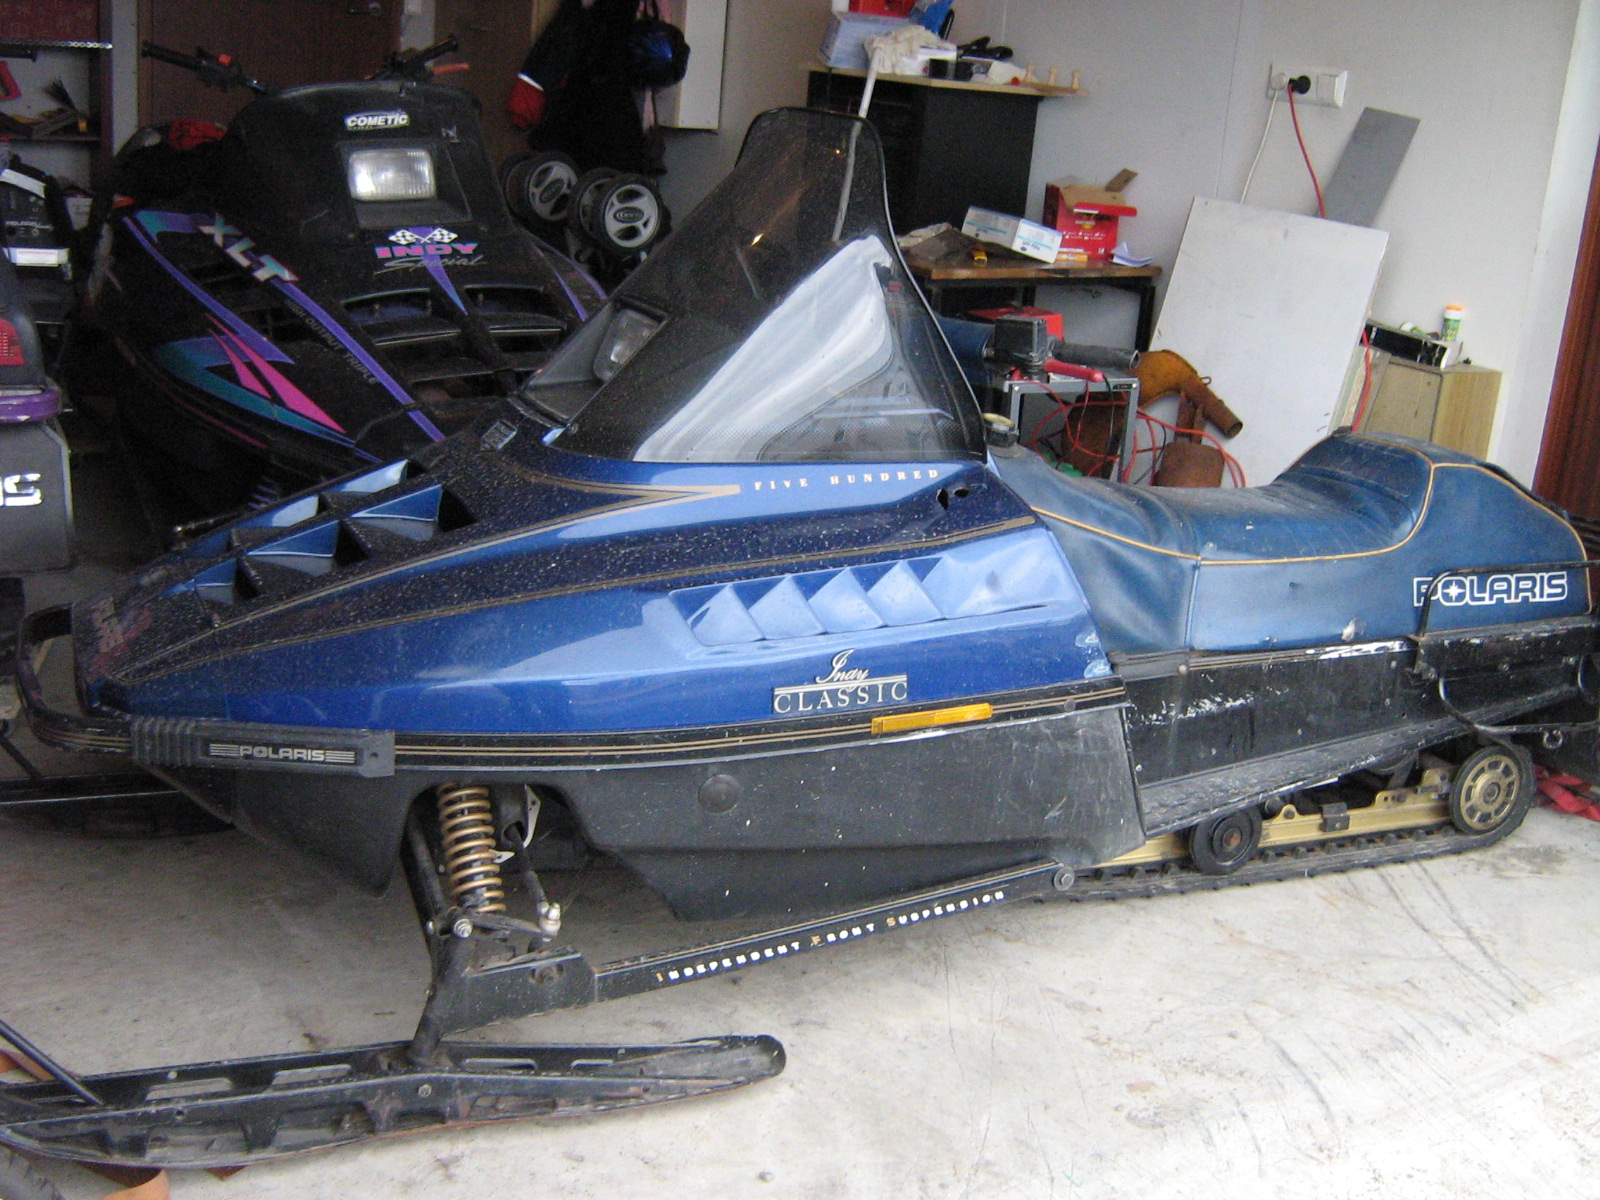 Bmw Vin Locations further 727it Vin Number Located Honda Foreman Atv besides 2001 Arctic Cat 400 4x4 AT09343003D13 together with Wiring Diagram As Well Honda Crf 450 Graphics On besides 1960 Corvette Vin Number Location. on polaris vin location